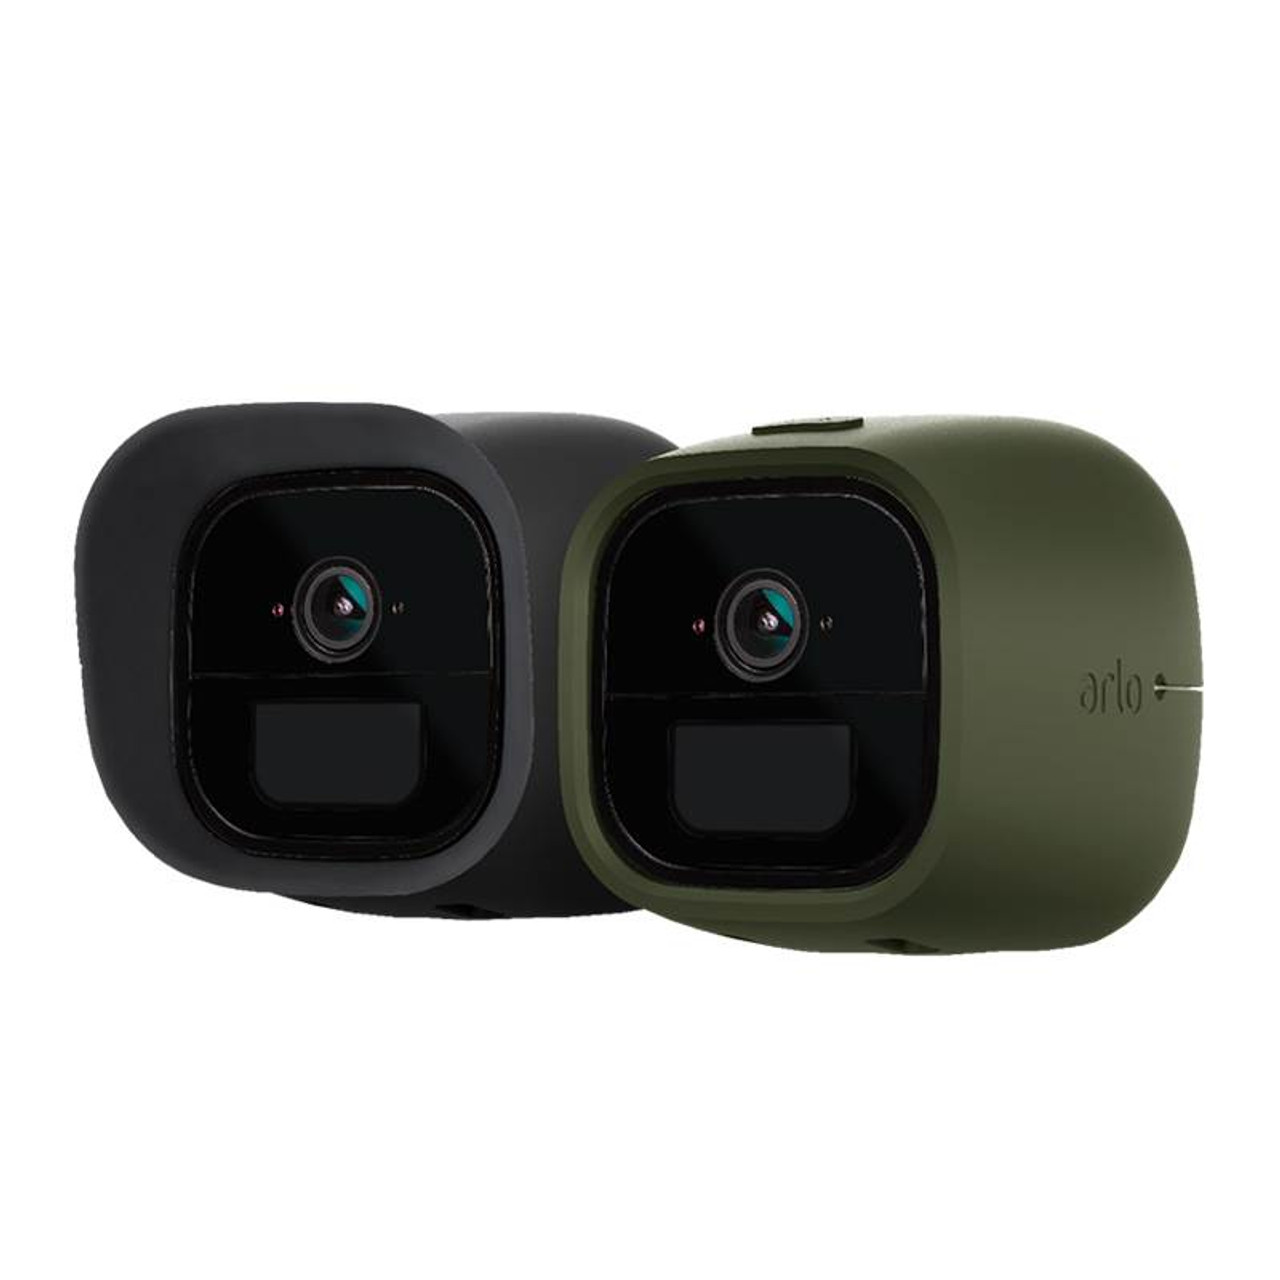 Image for Arlo Go Silicone Skins - Green and Black Set of 2 CX Computer Superstore